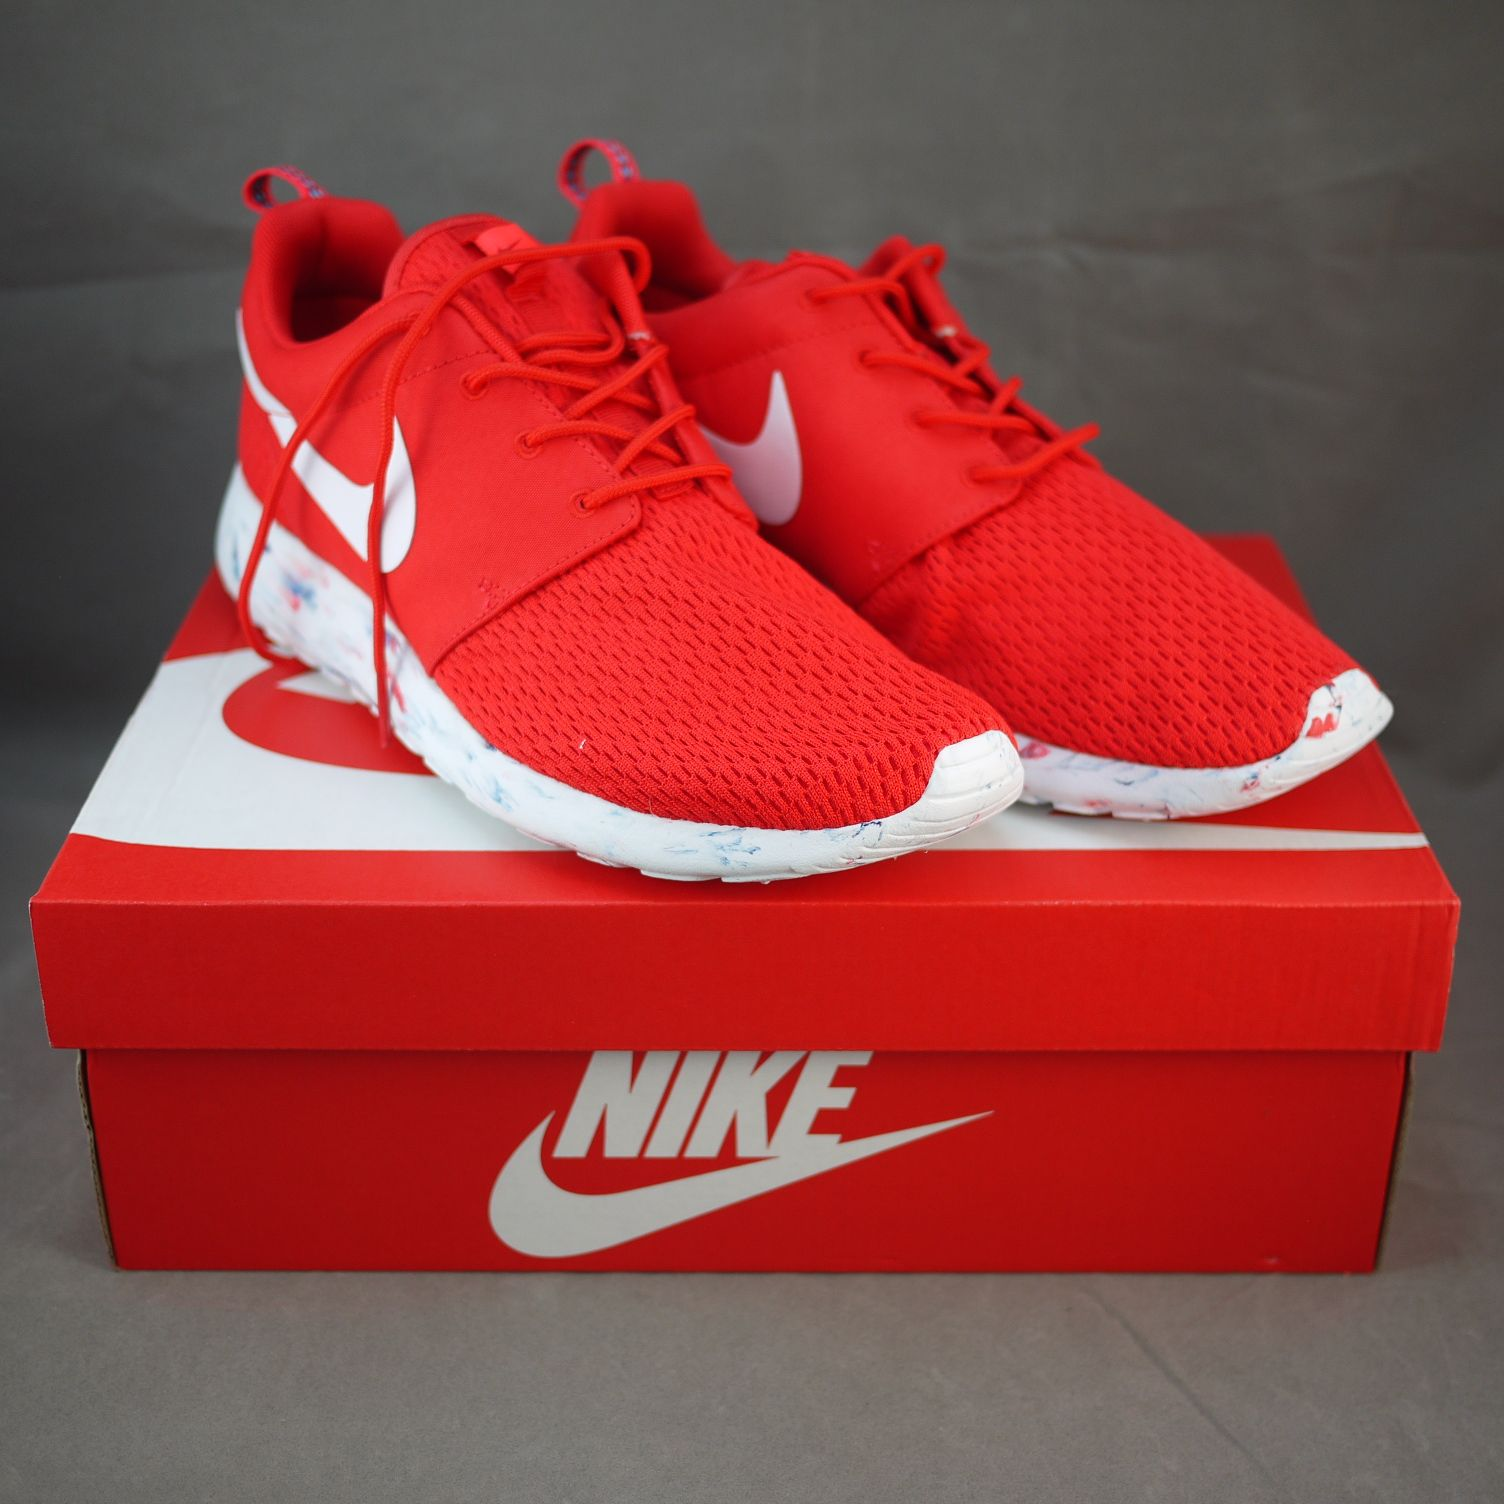 Nike Roshe Défi Marine Pourpre Rouge / Laser / Minuit / Robes Blanches